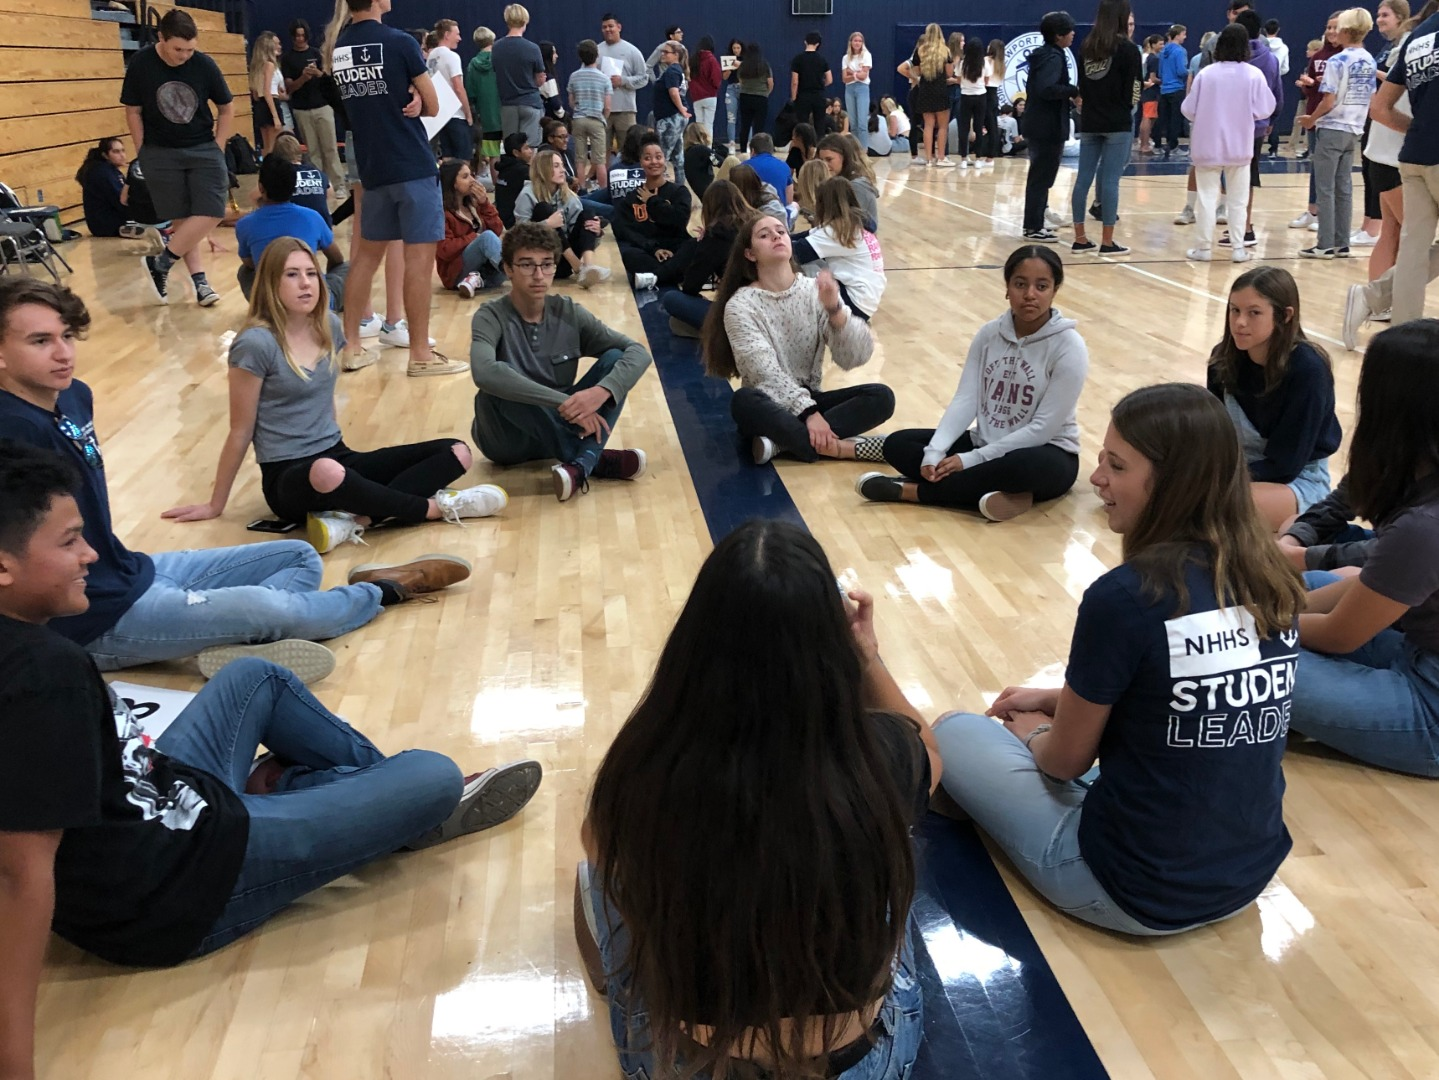 students sitting in a circle in the gym